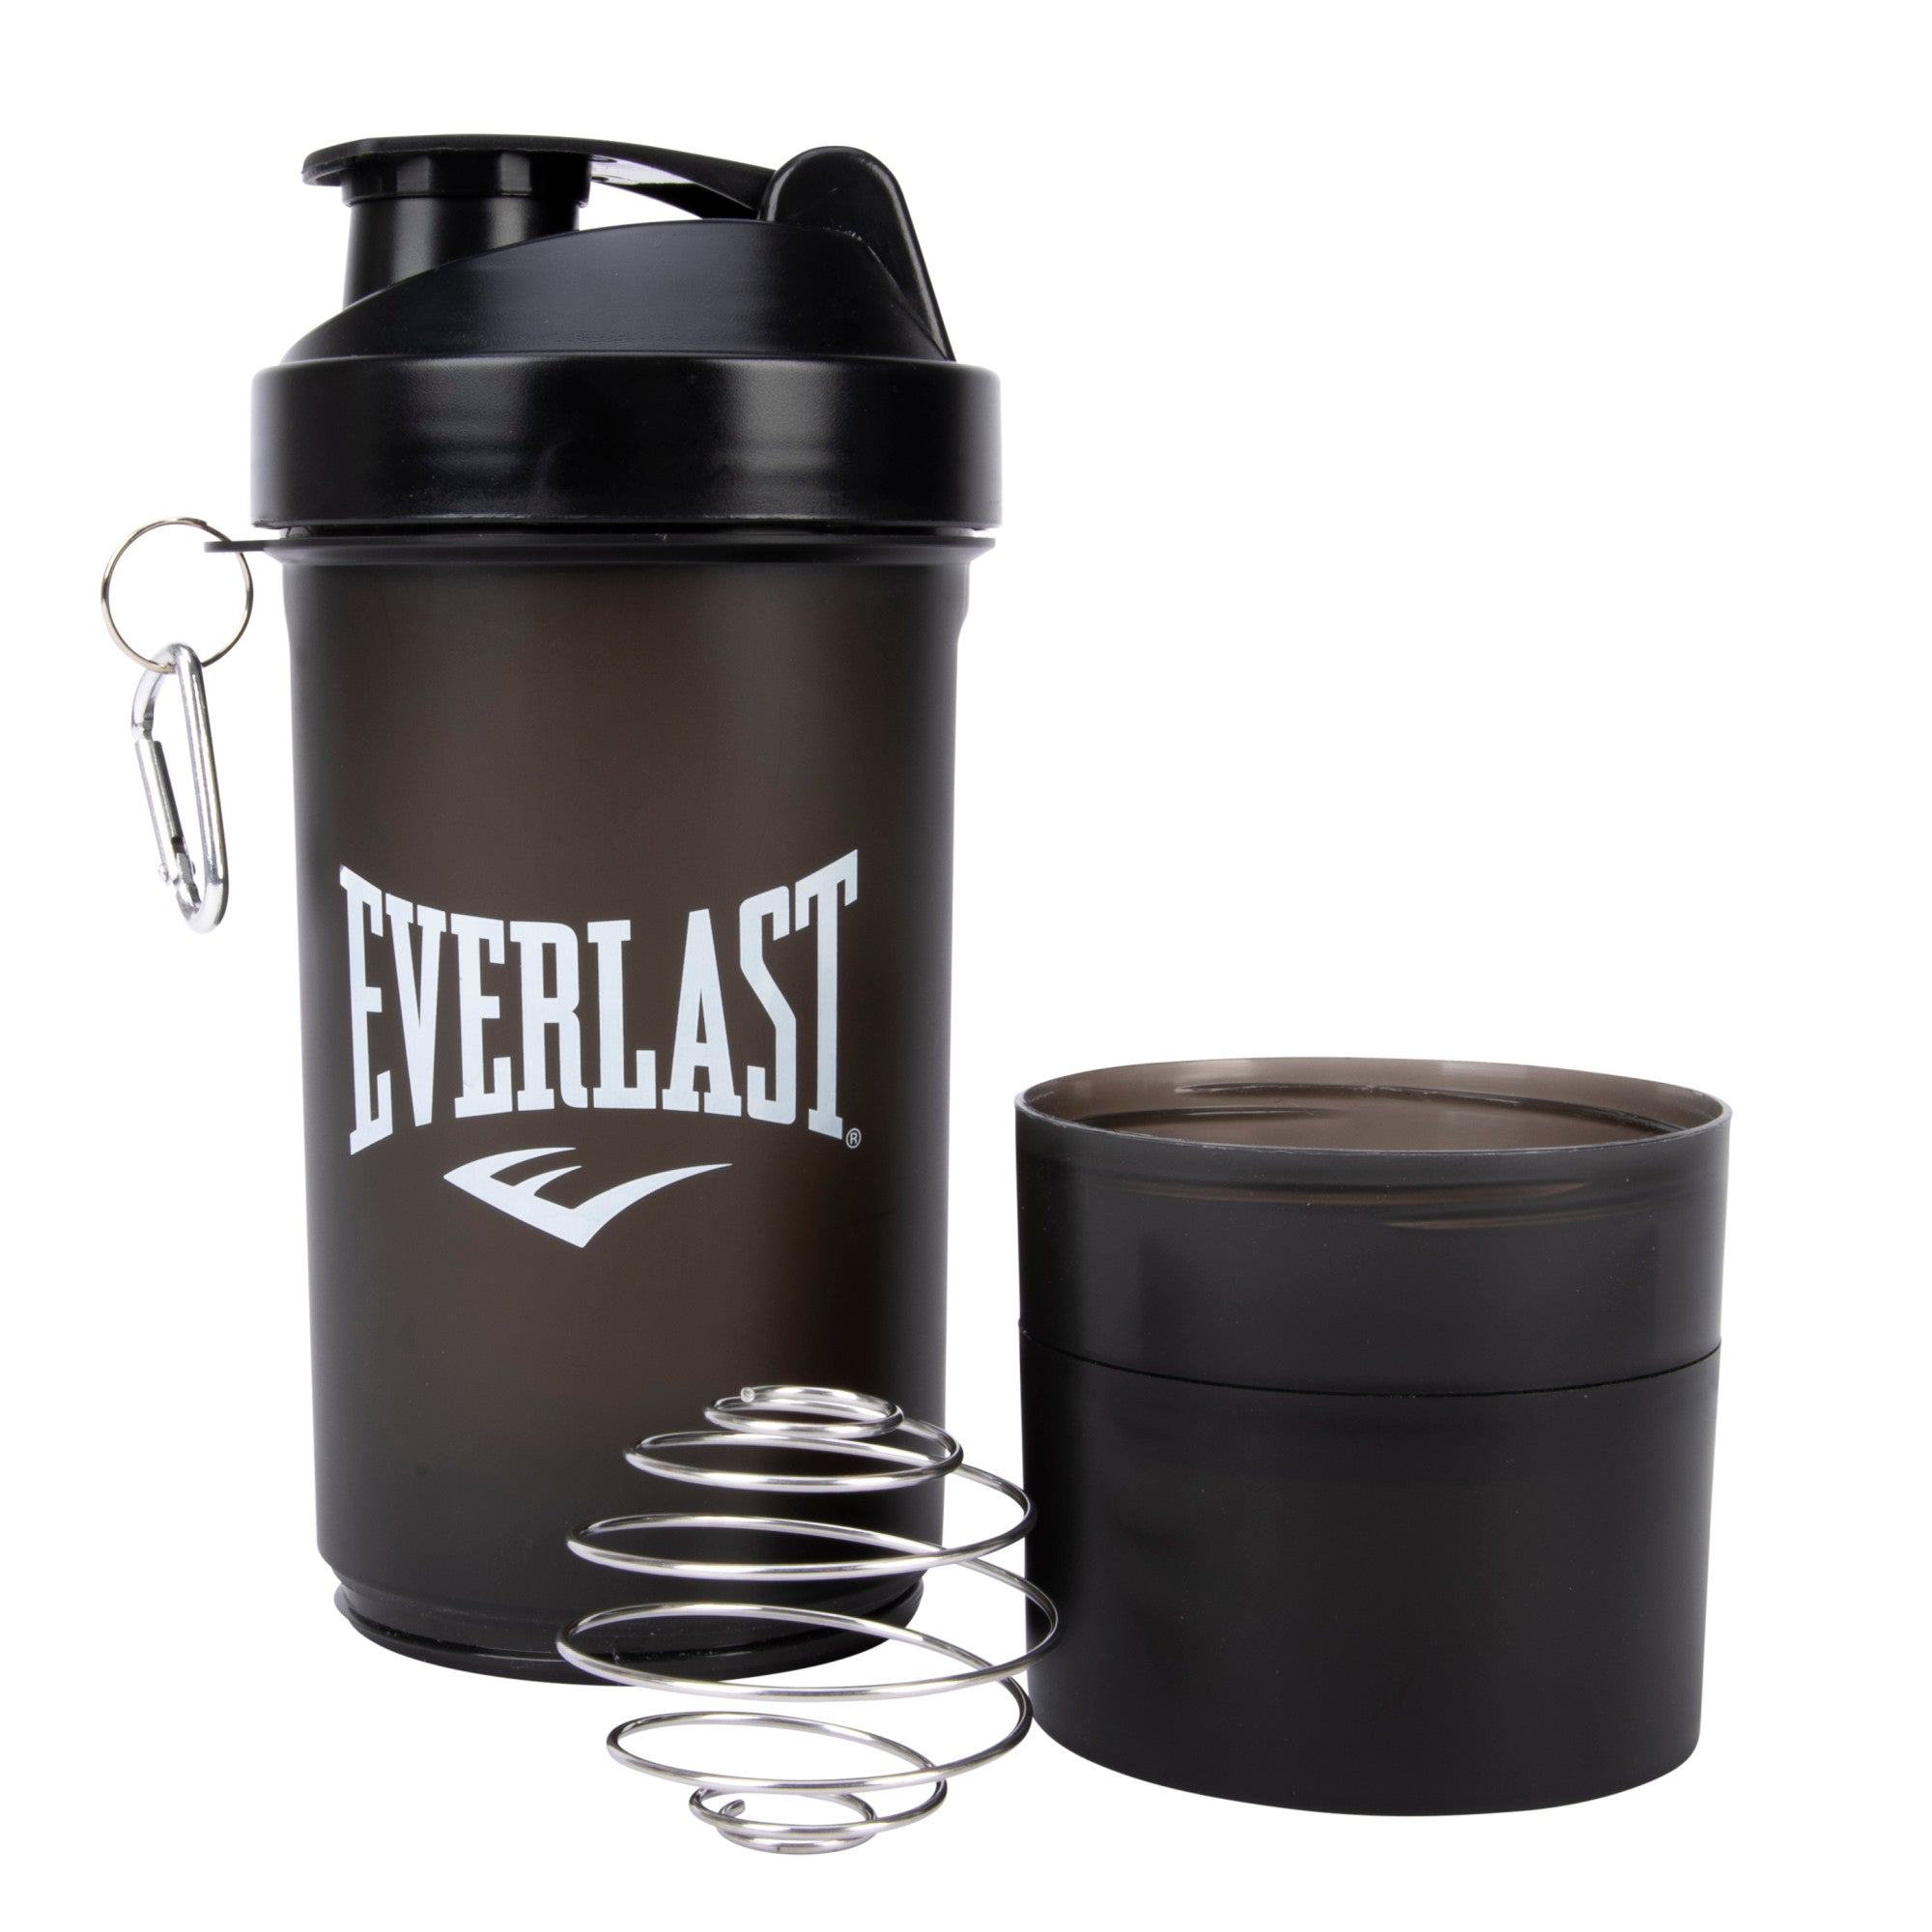 Everlast Shaker Bottle With 2 Compartments by Everlast Canada